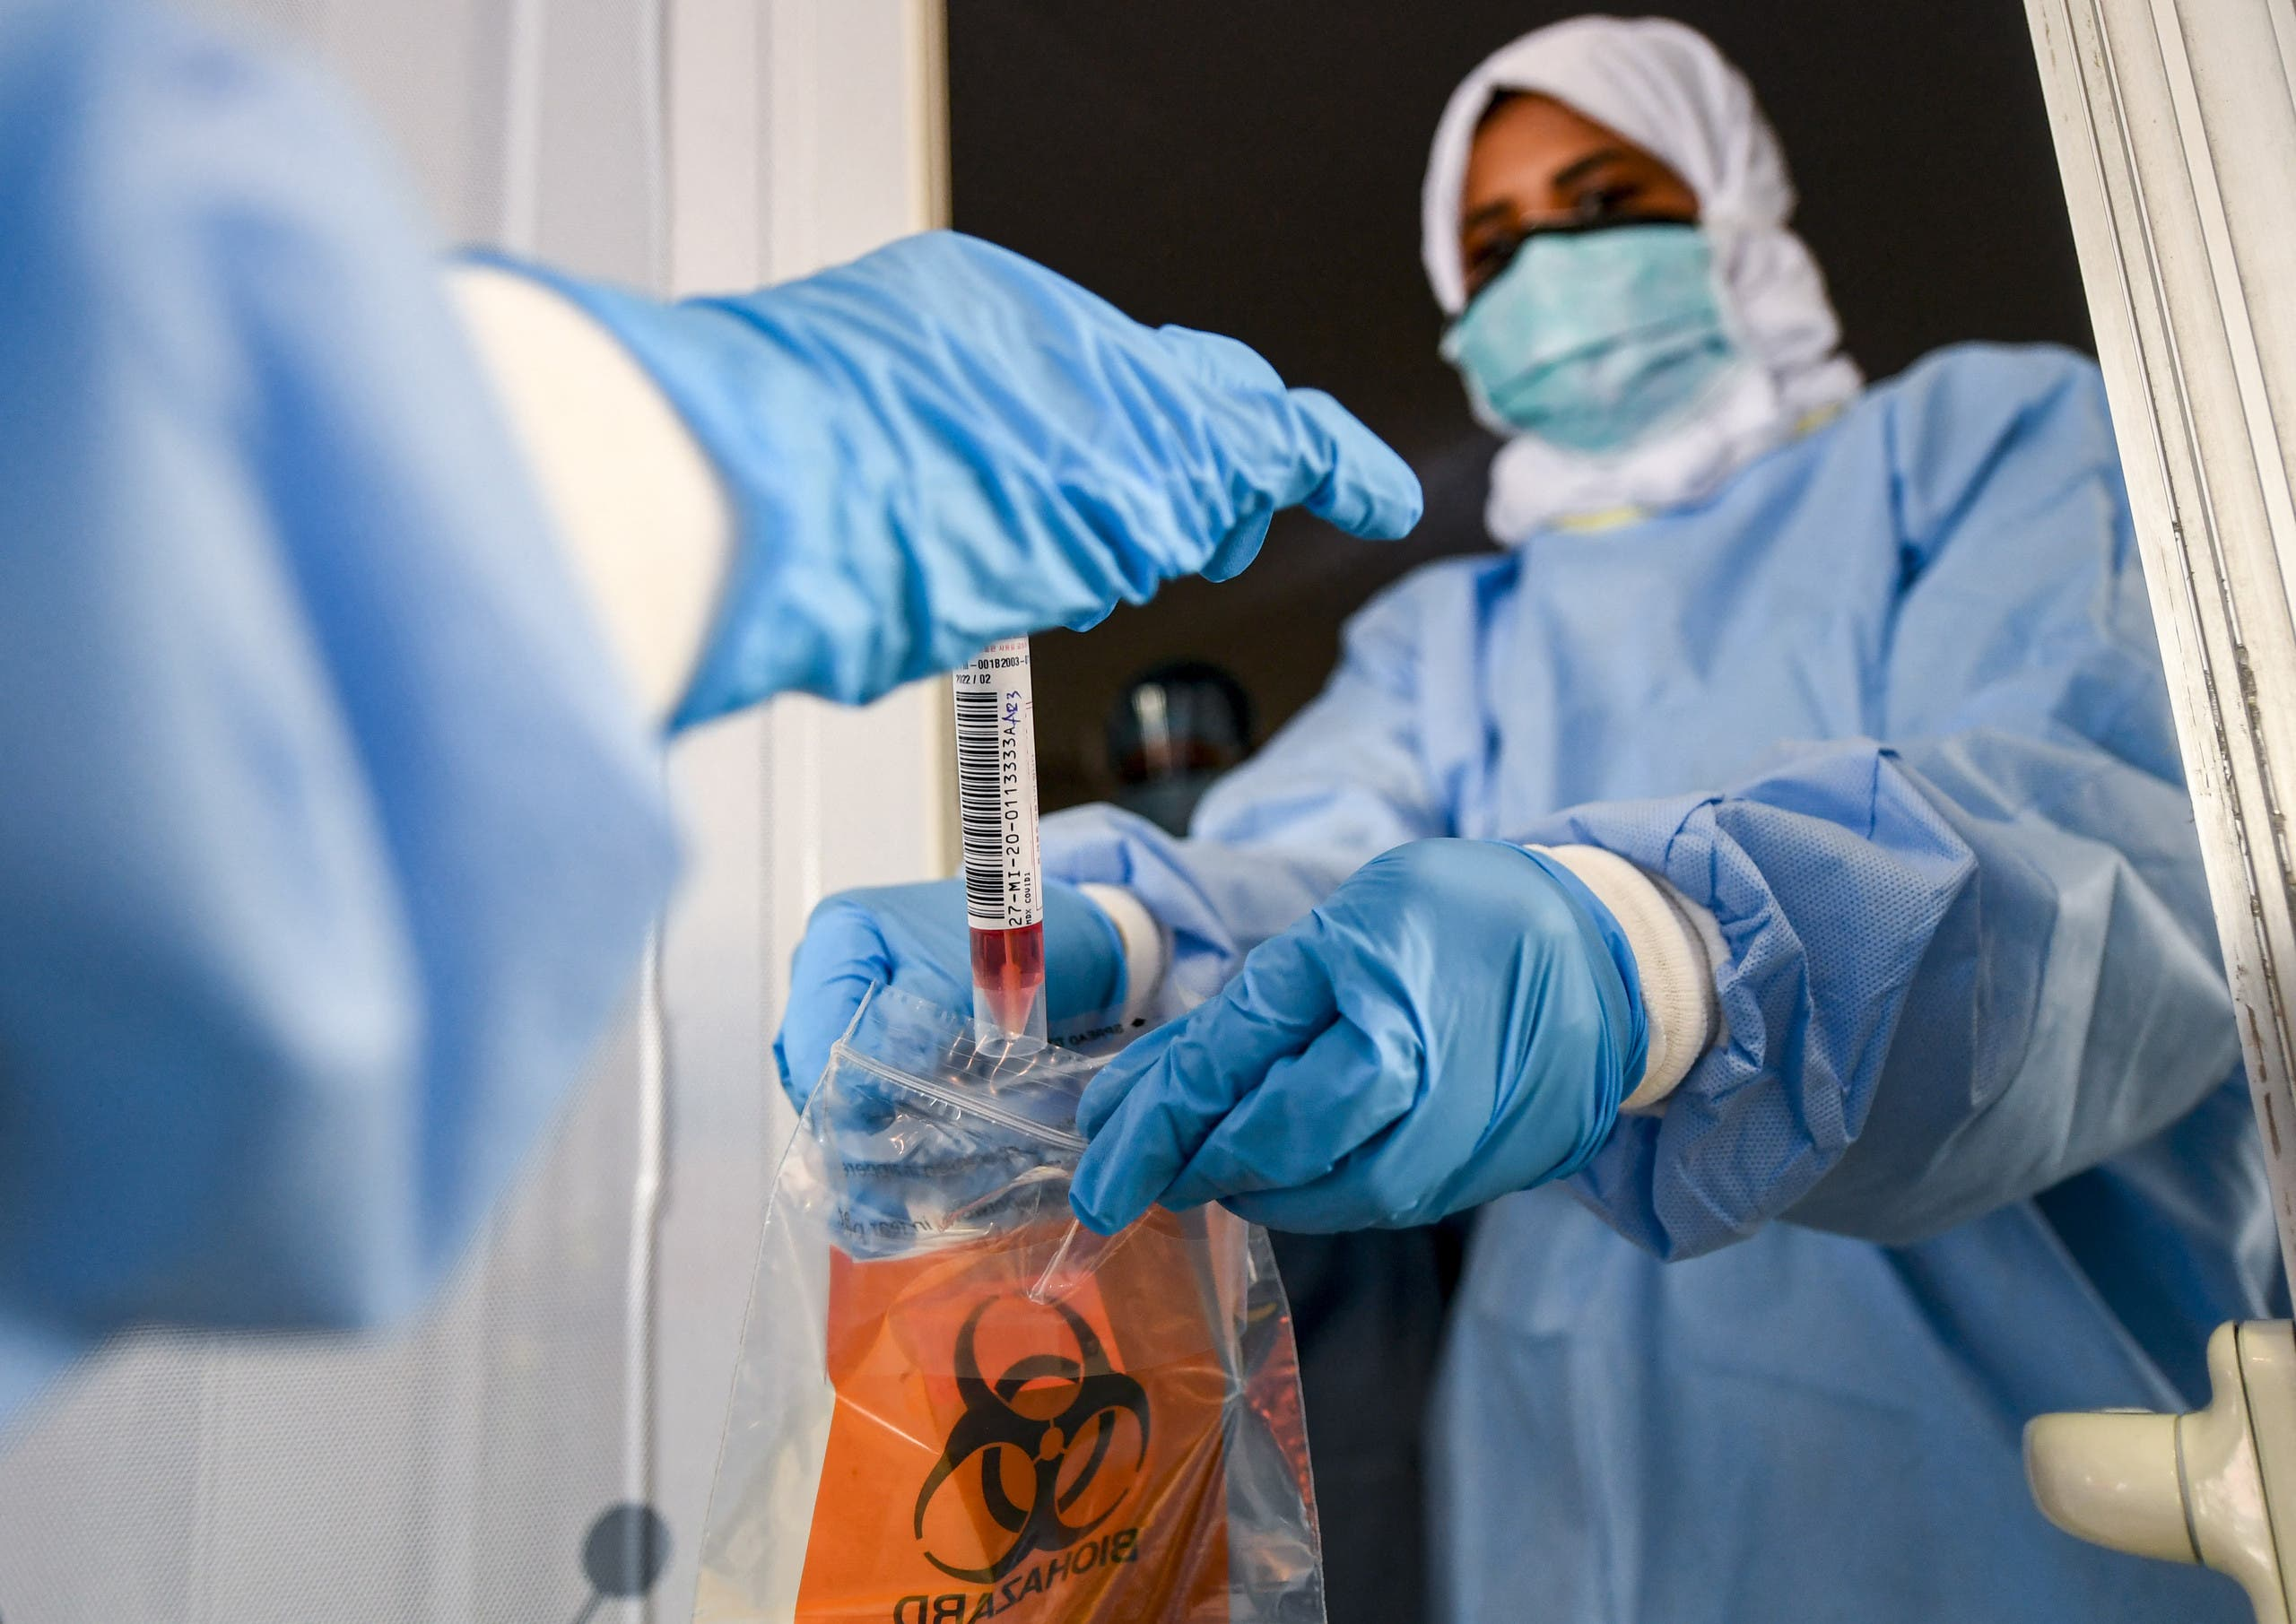 Laboratory workers bag a biological sample at a drive-through COVID-19 coronavirus testing centre in al-Khawaneej district of the gulf emirate of Dubai, UAE. (File photo: AFP)